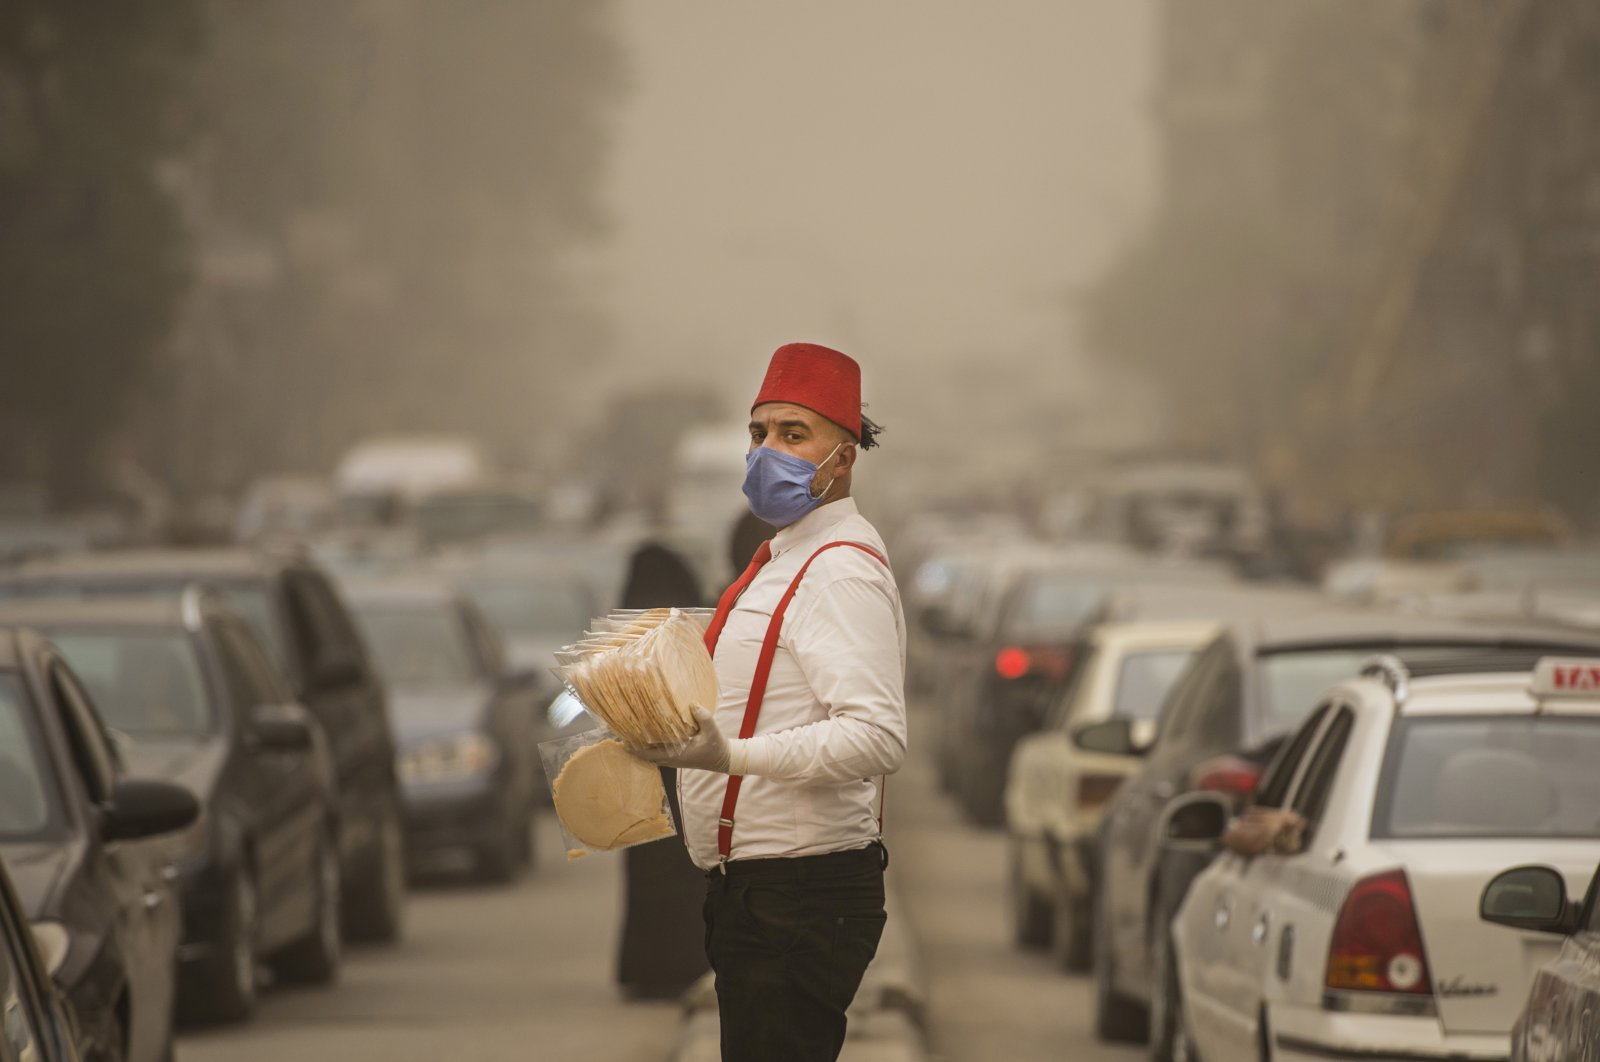 A street vendor wearing a protective face mask stands on a street between lines of cars during a sandstorm in Cairo, Egypt, Sunday, April 5, 2020. (EPA Photo)